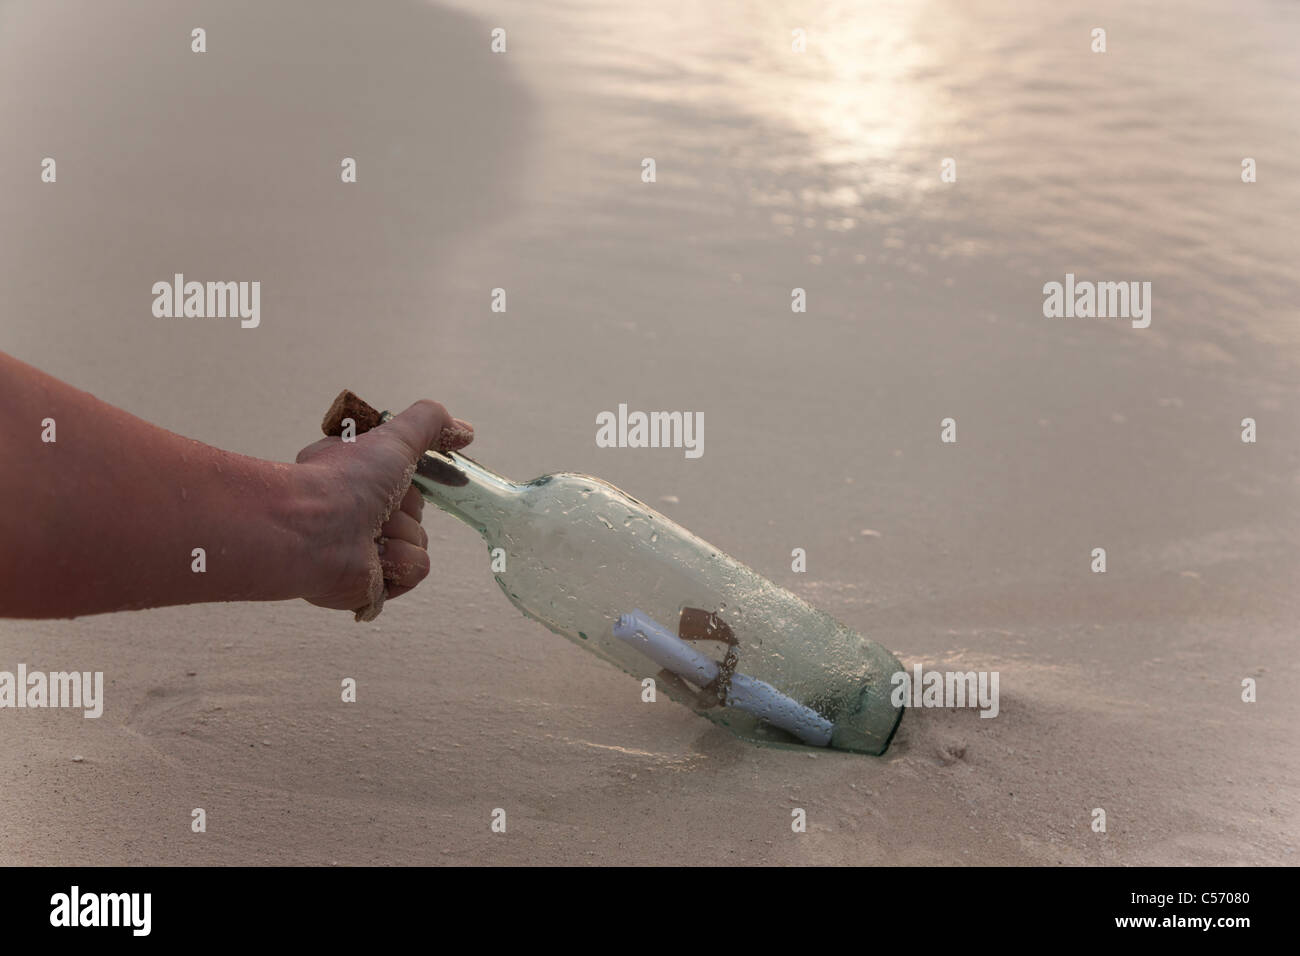 Person with message in a bottle at beach - Stock Image